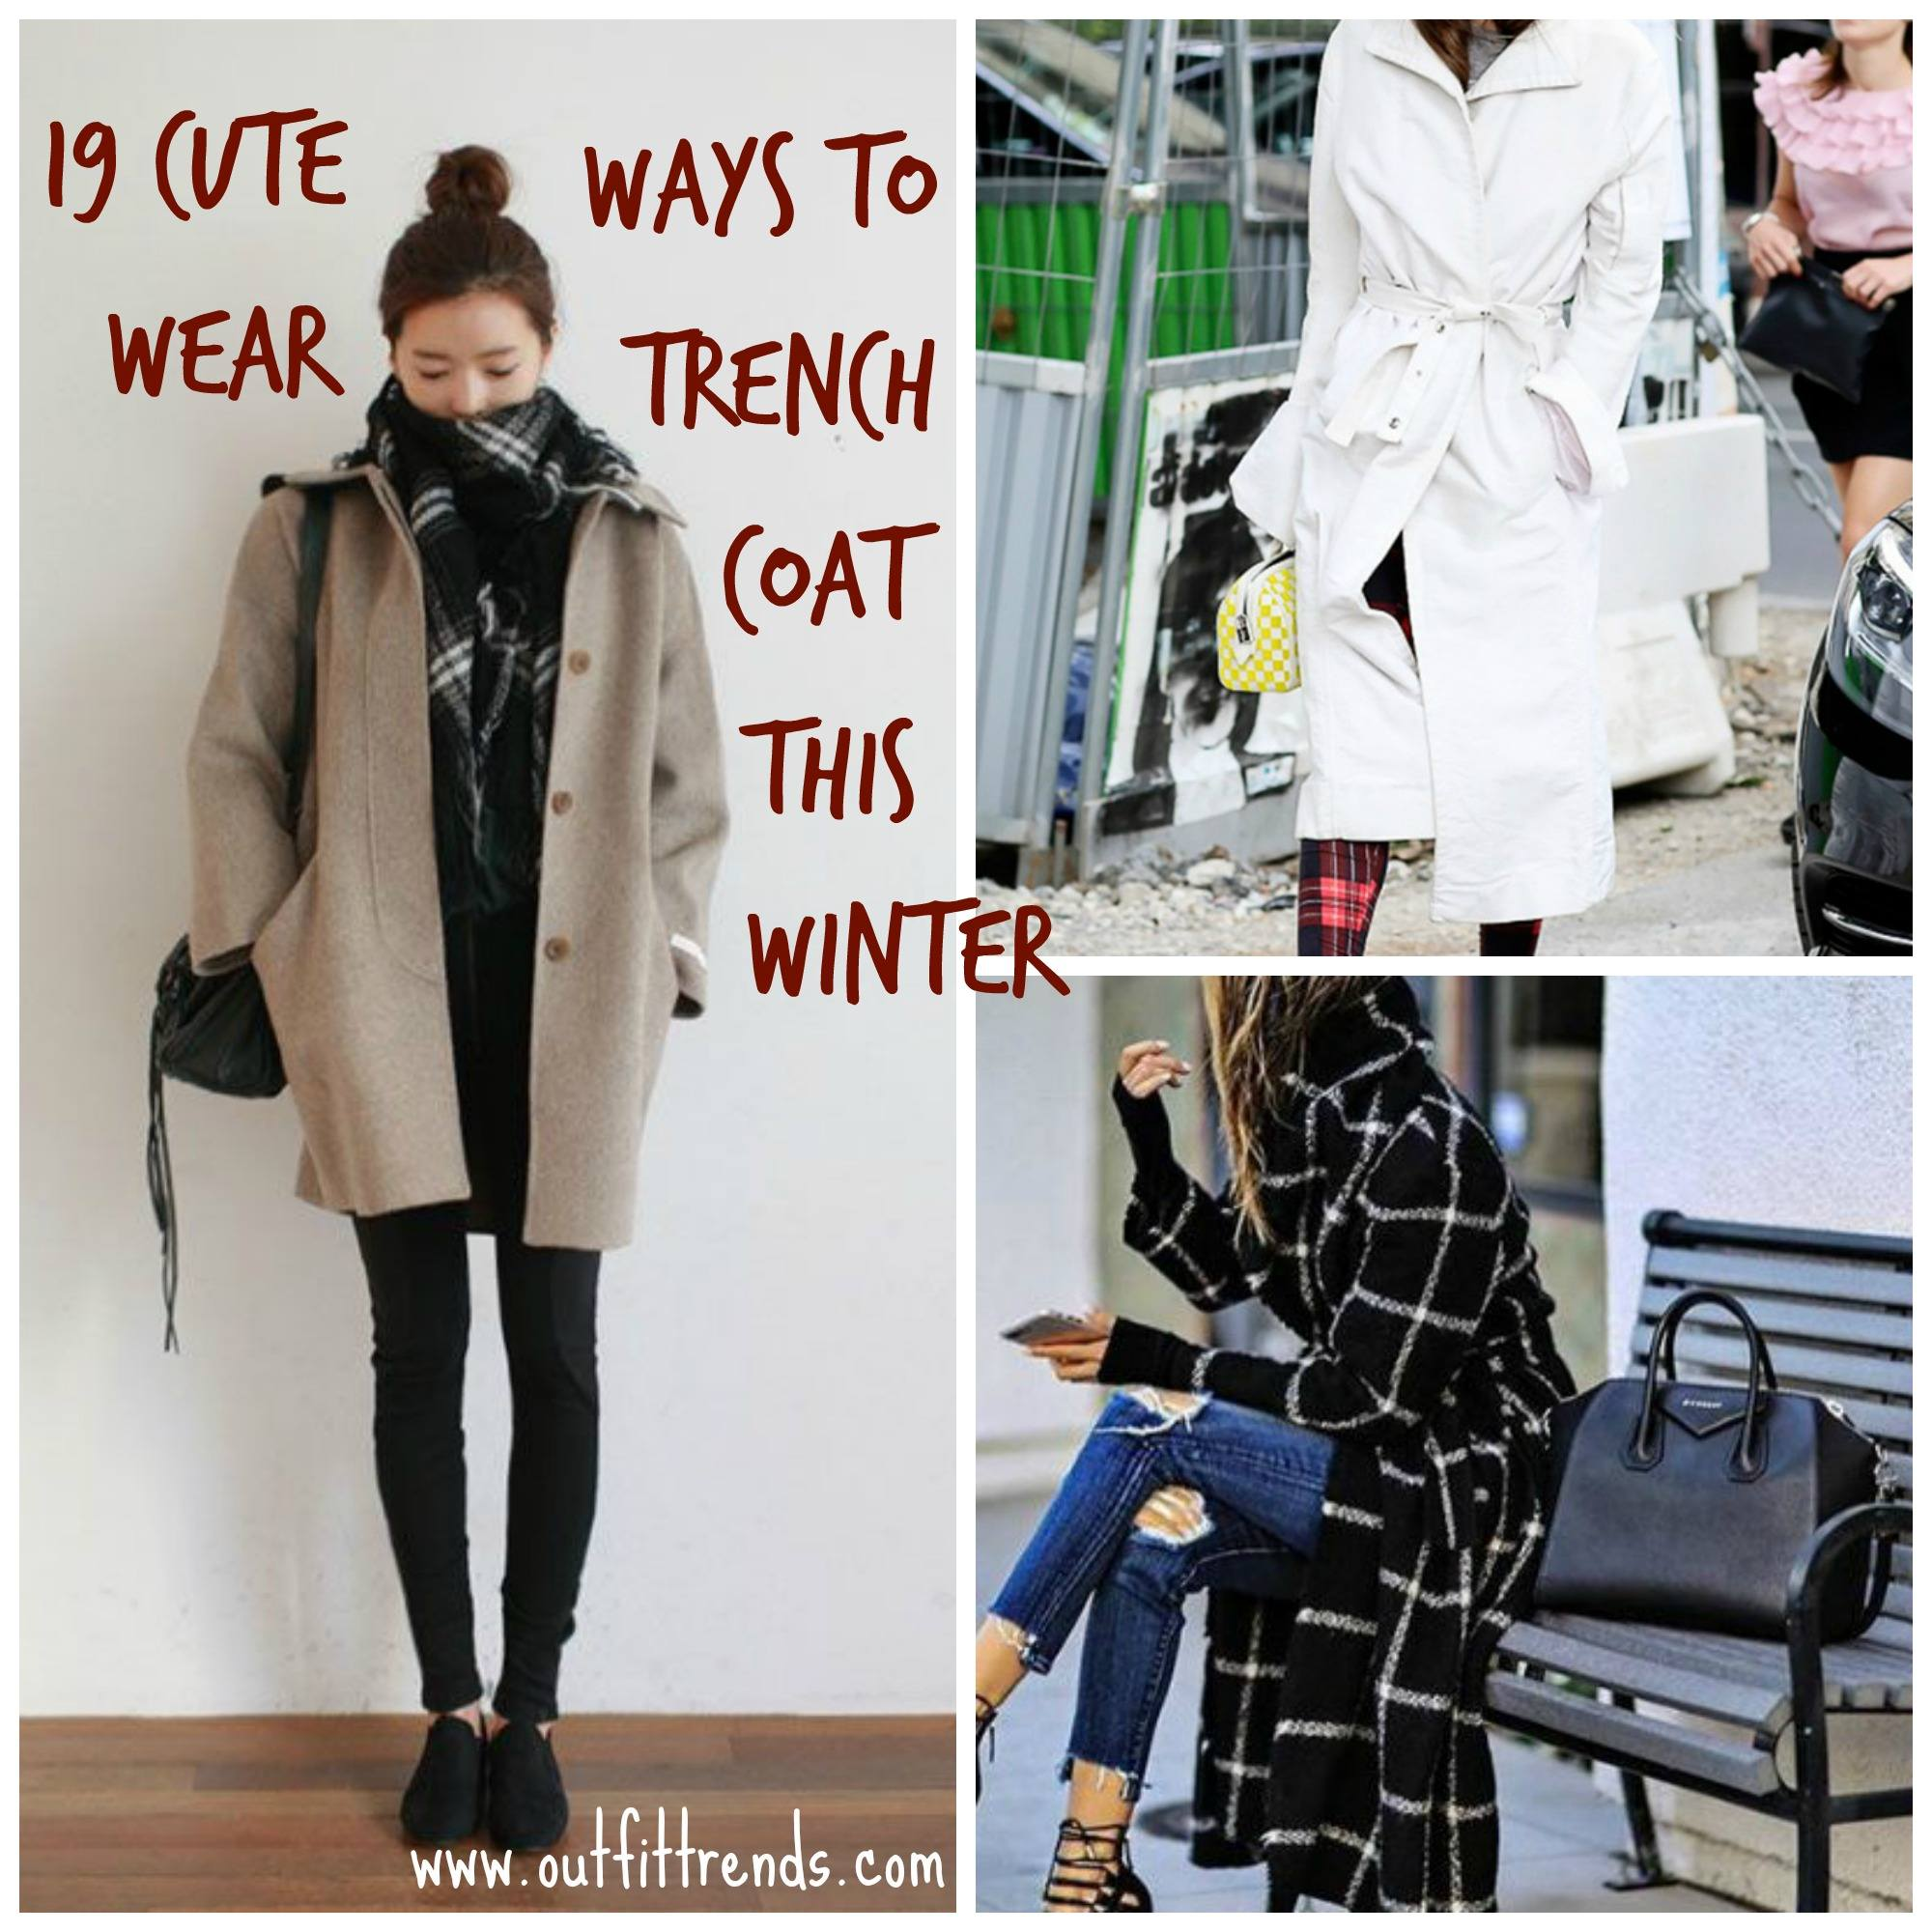 Watch 7 Ways To Wear a Trench Coat ThisSpring video